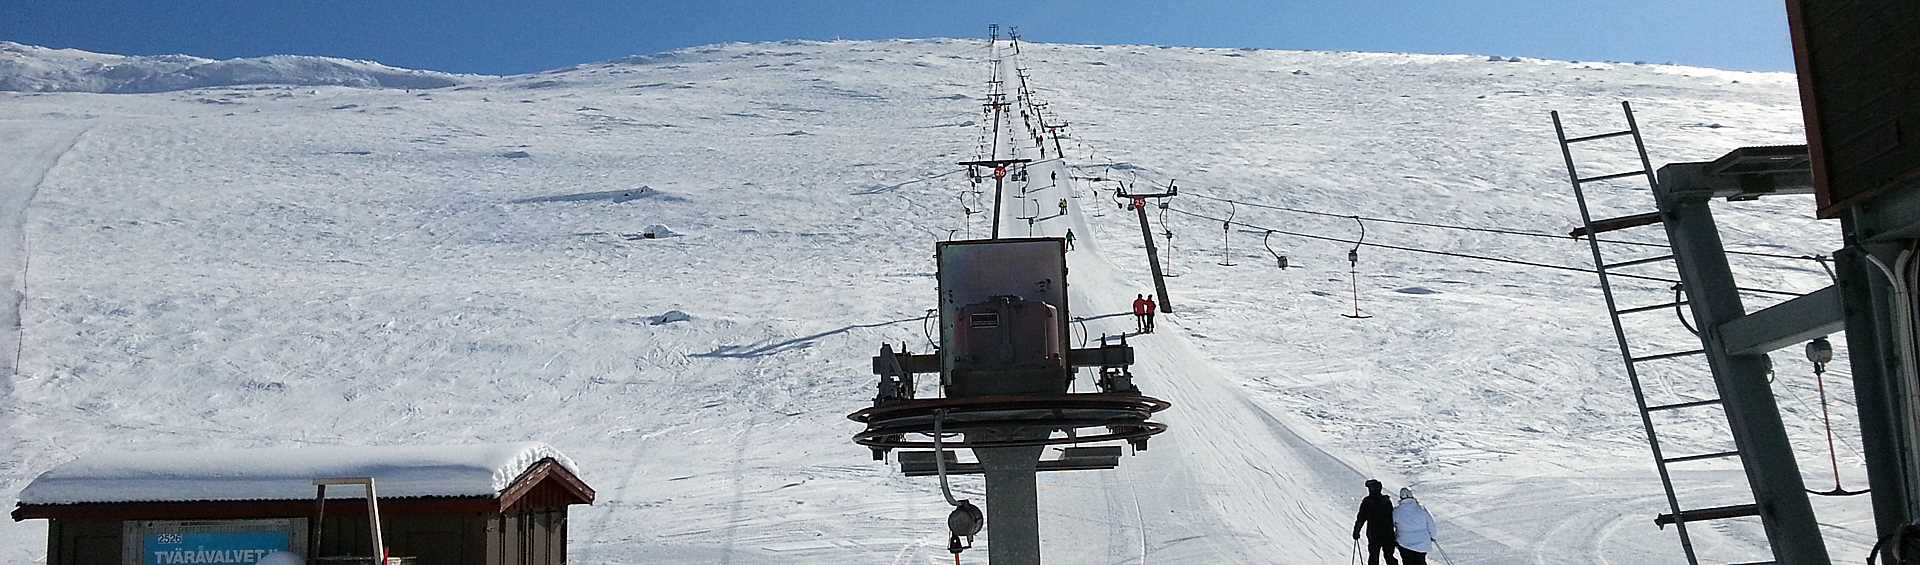 Skiers travelling in ski lift upwards a mountain slope